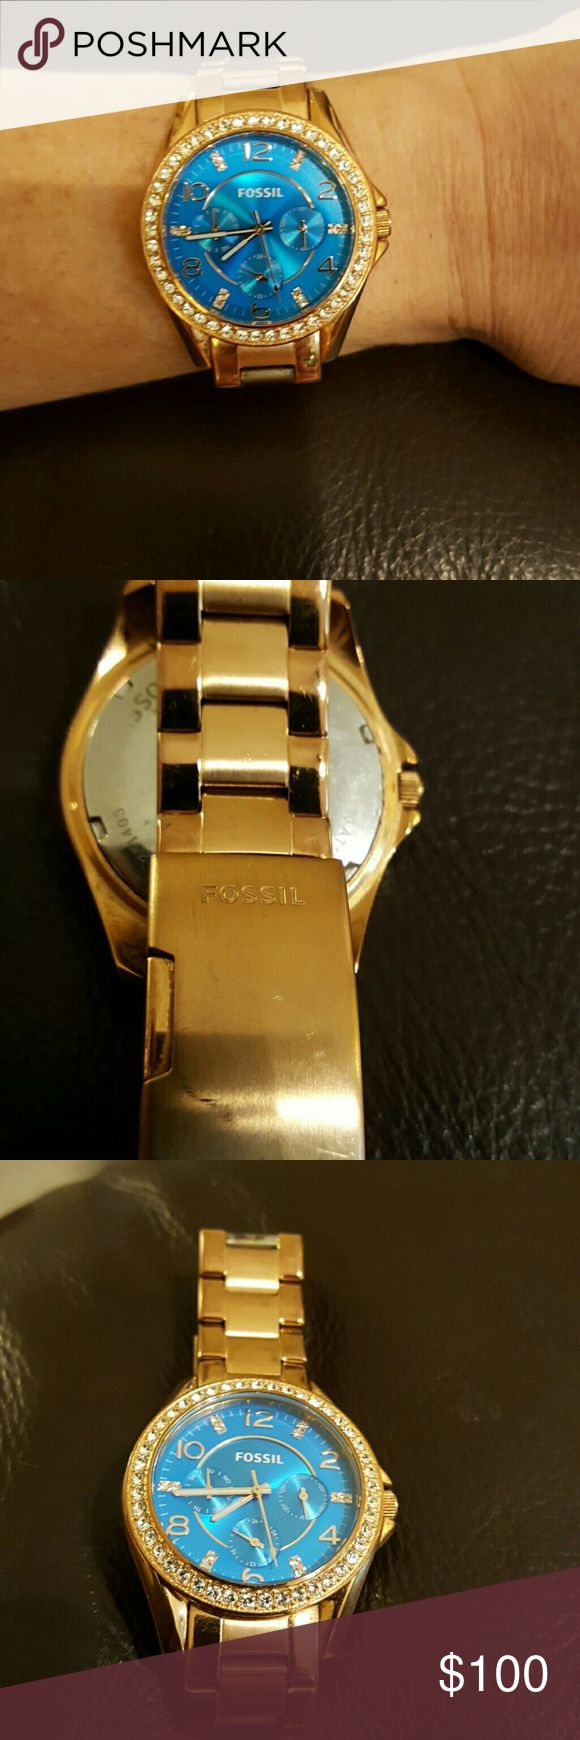 Fossil Watch Fossil Watch with blue face surrounded by crystals. Analog with odd numbers each represented by crystals.    Works but needs battery.   Go to any Fossil store for FREE LIFETIME BATTERY REPLACEMENT.   Gold tone. Accessories Watches